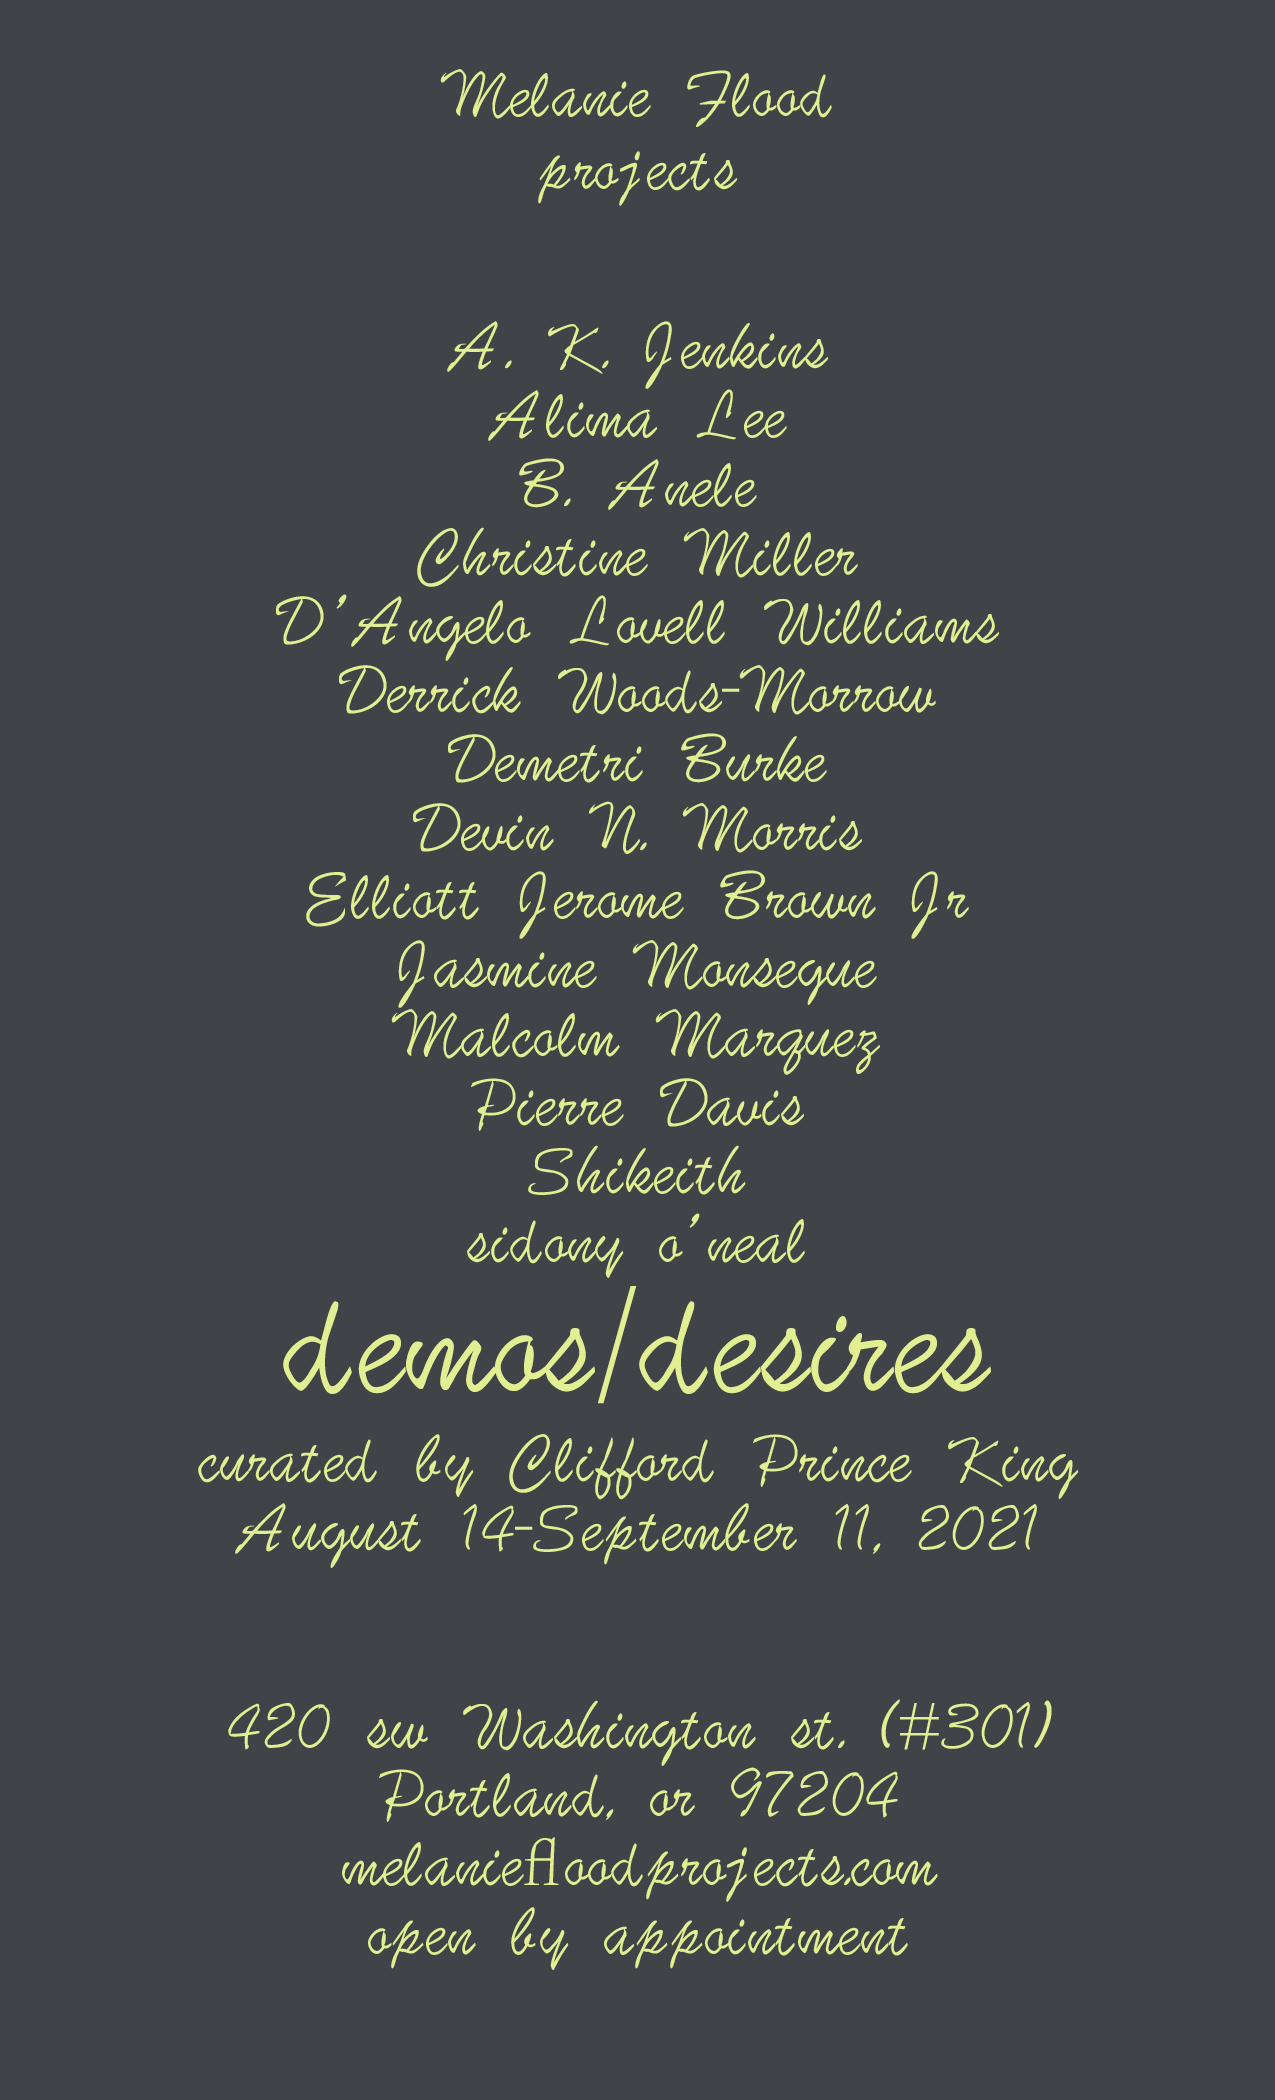 """The names of the art show """"demos/desires"""" are listed above the title in soft yellow, cursive font and centered against a grey background."""